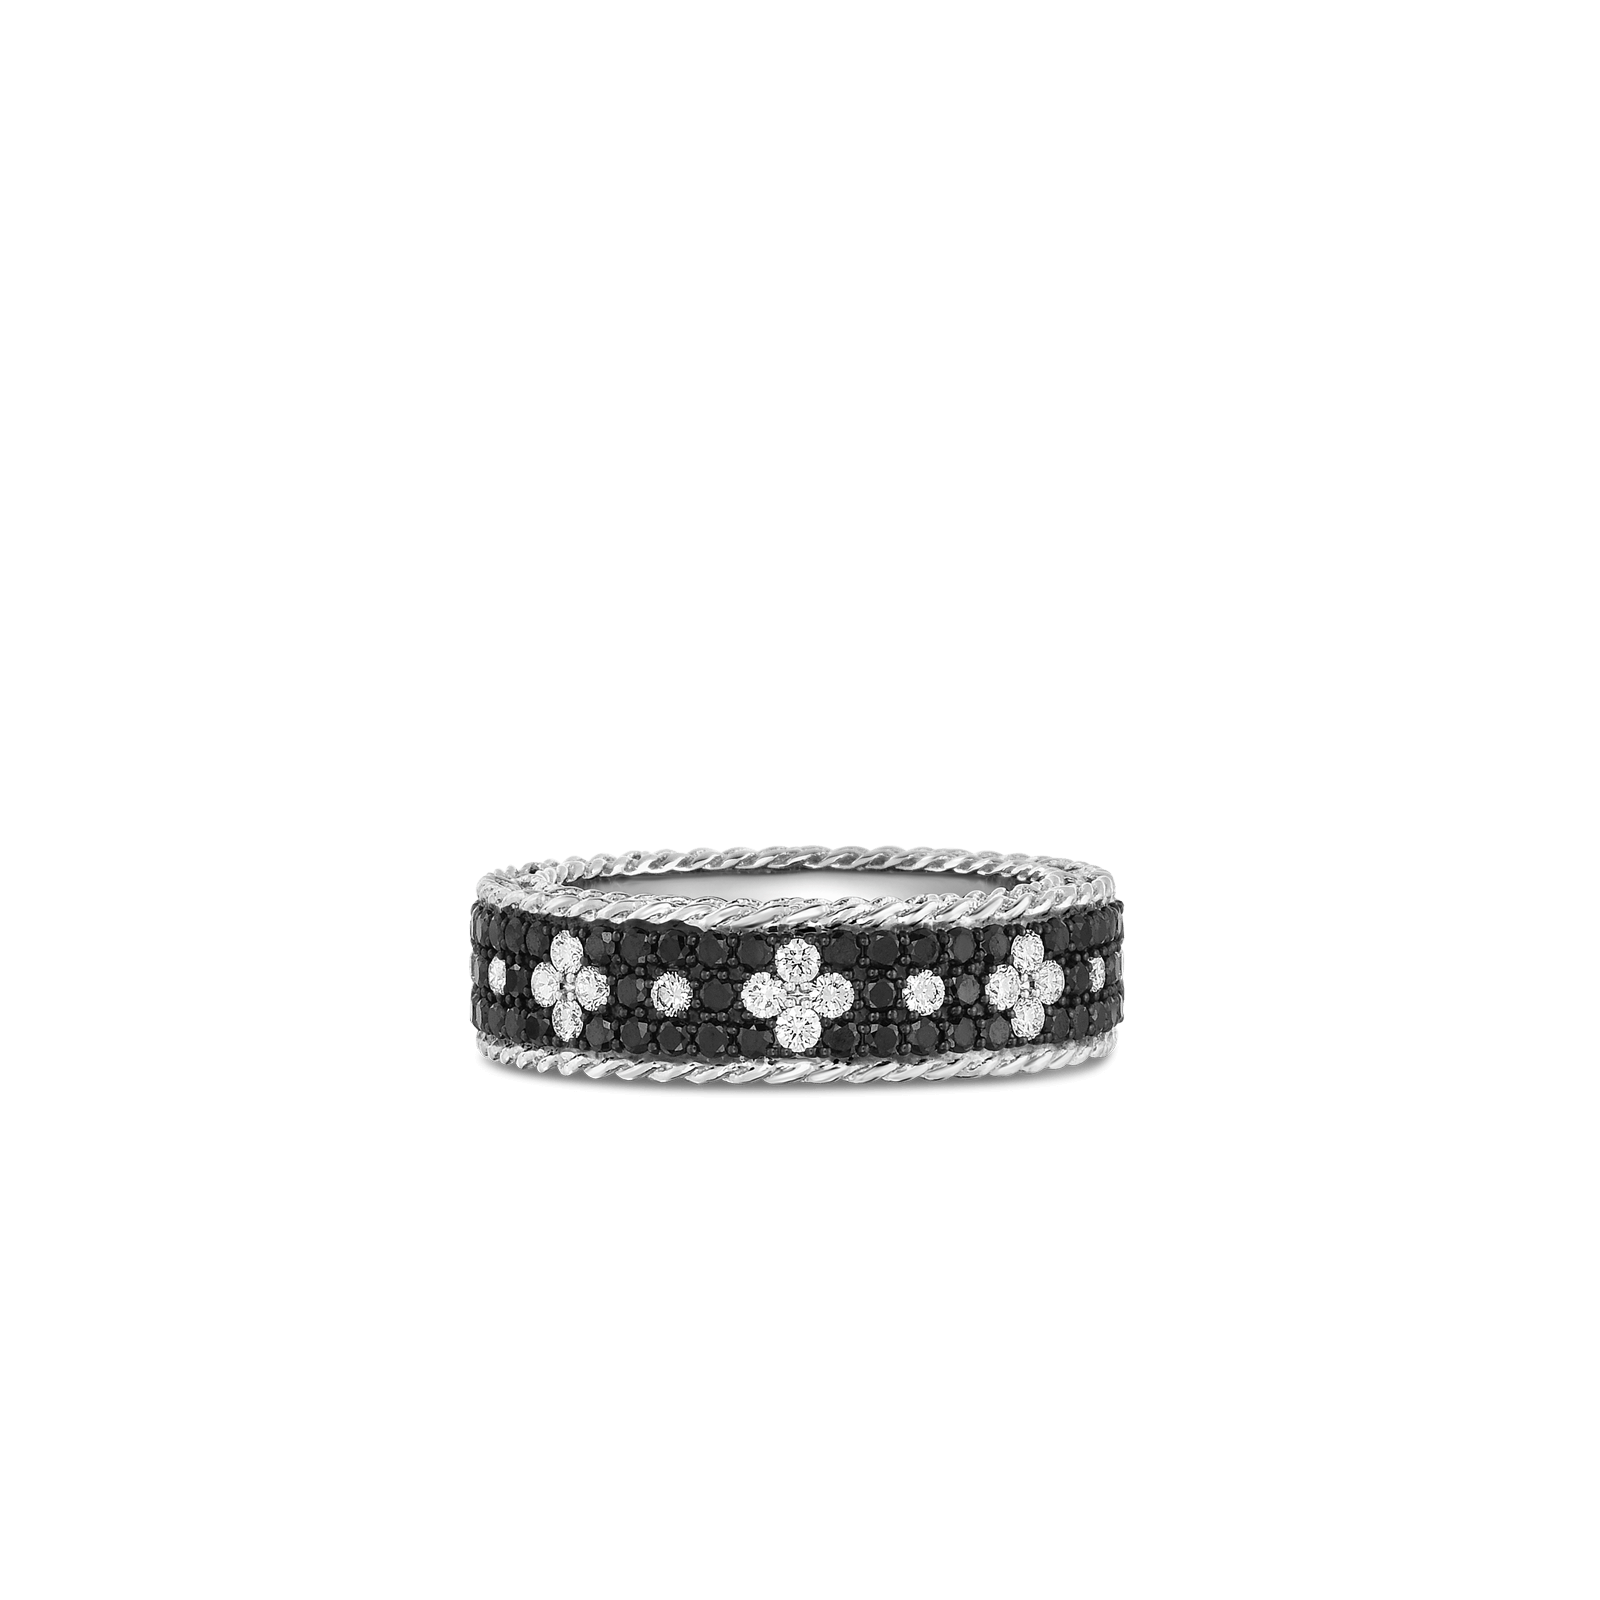 Wide Collar With Black And White Fleur De Lis Diamonds